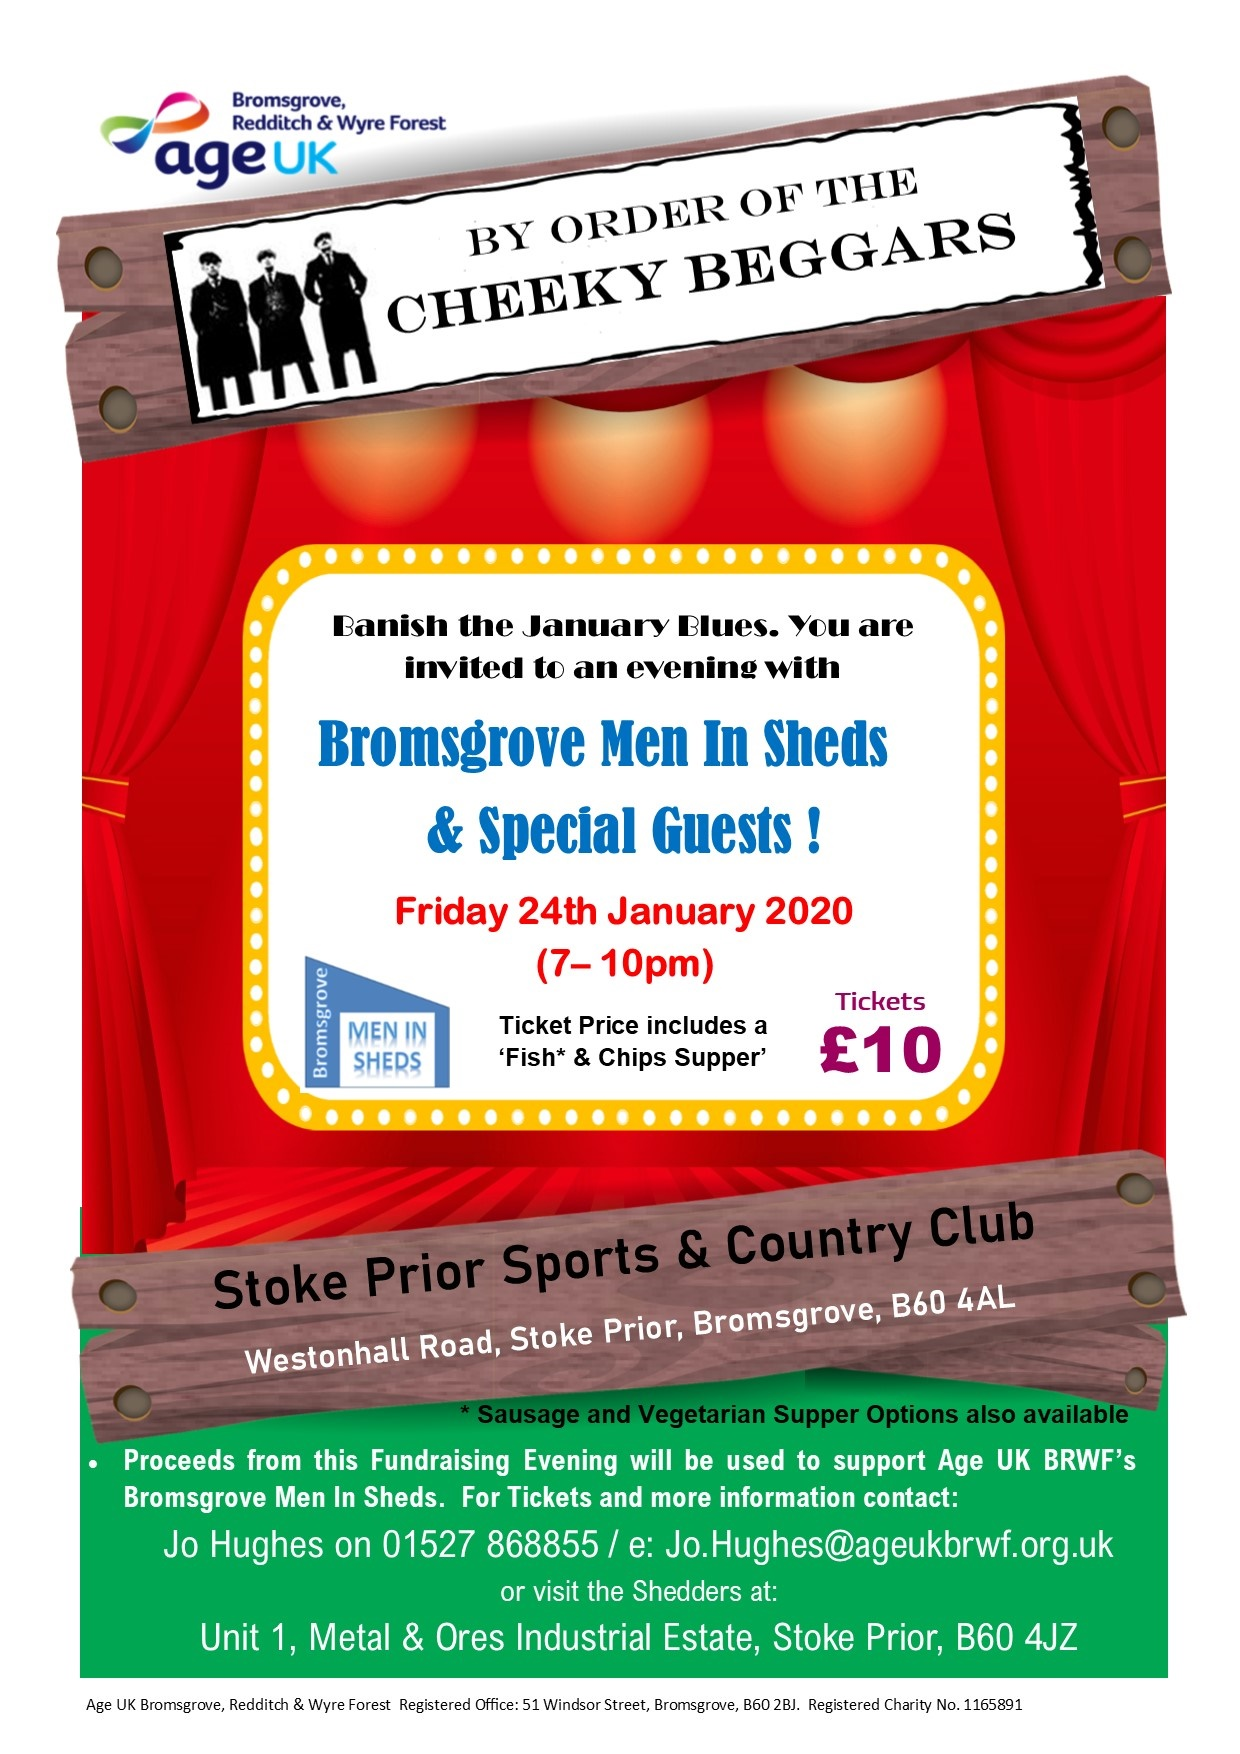 Banish the January Blues with an Evening with Bromsgrove Men In Sheds